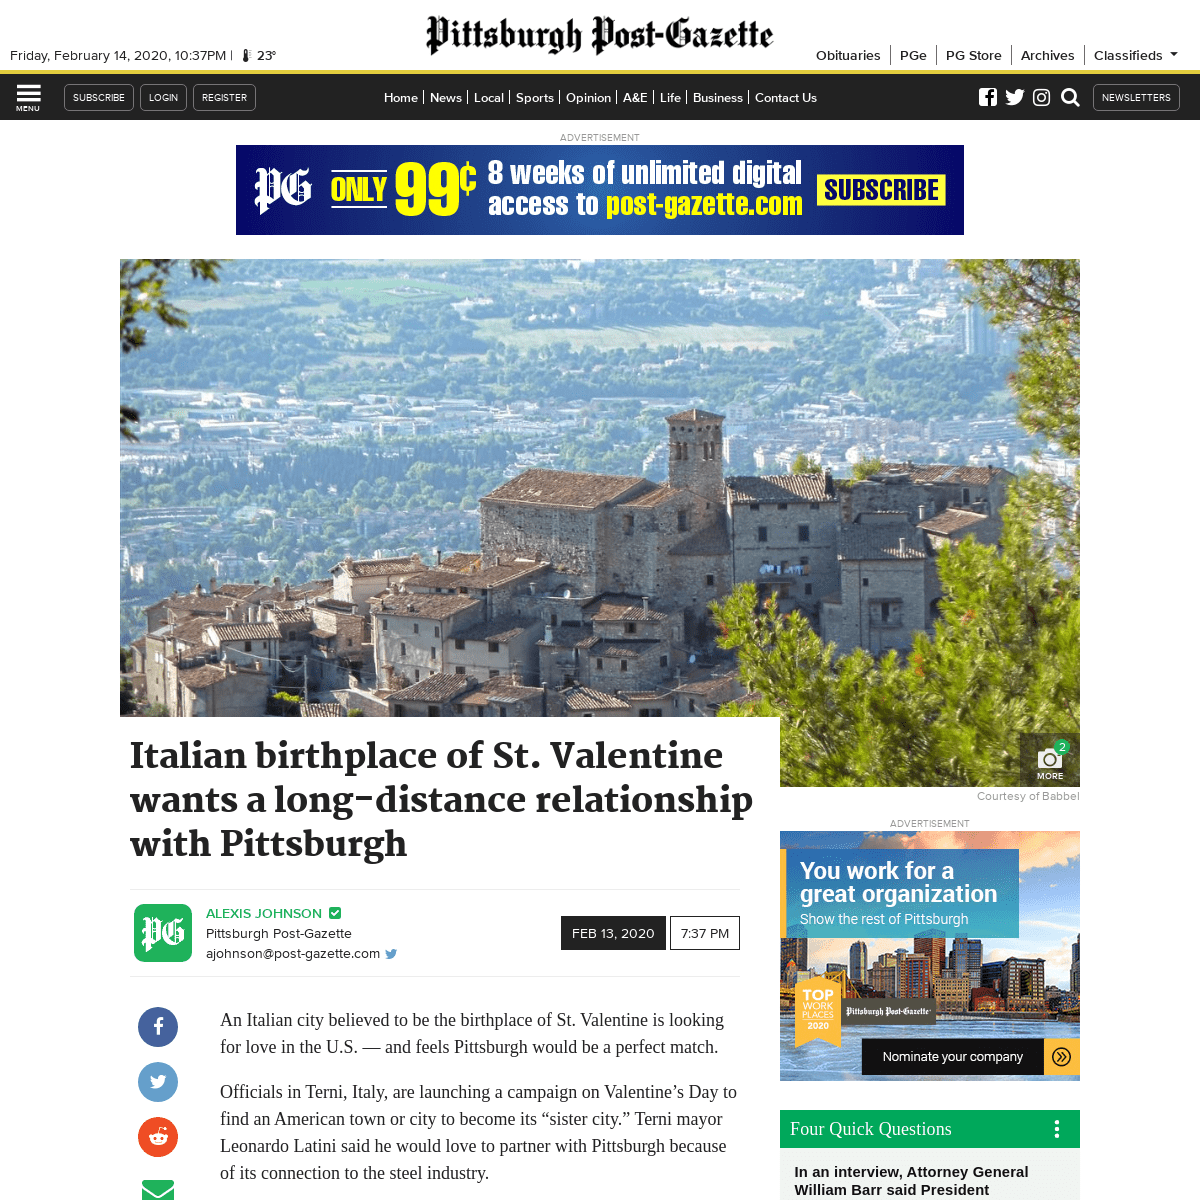 Italian birthplace of St. Valentine wants a long-distance relationship with Pittsburgh - Pittsburgh Post-Gazette